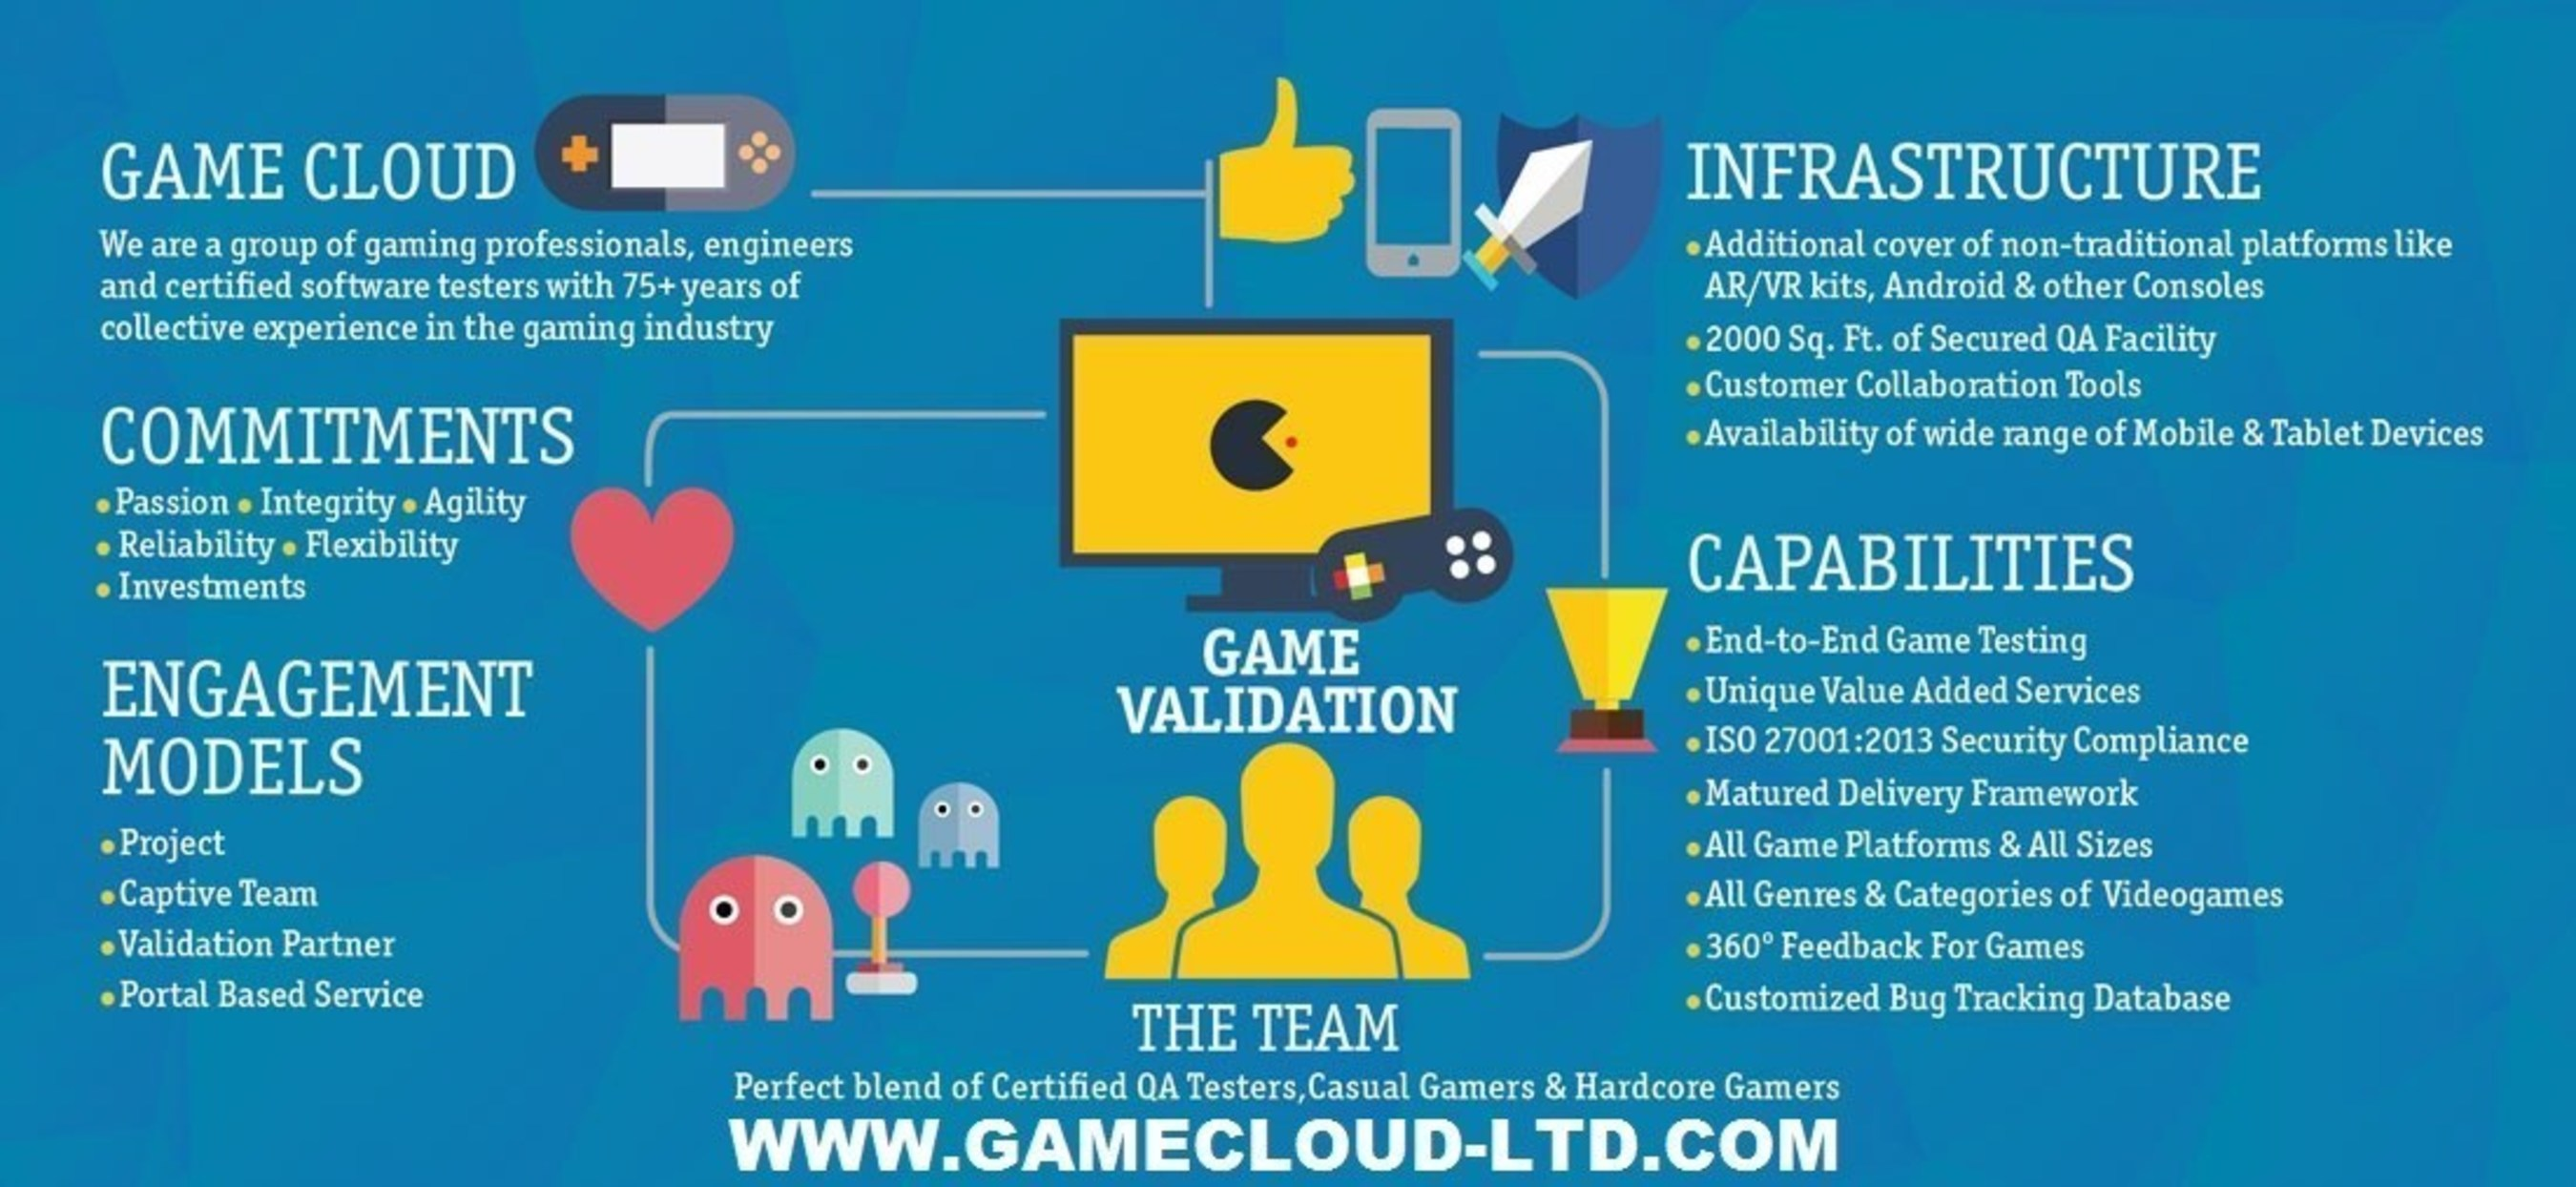 GameCloud Technologies Pvt Ltd Exhibited Their New Video Game Validation Services at Game Connection in San Francisco, California